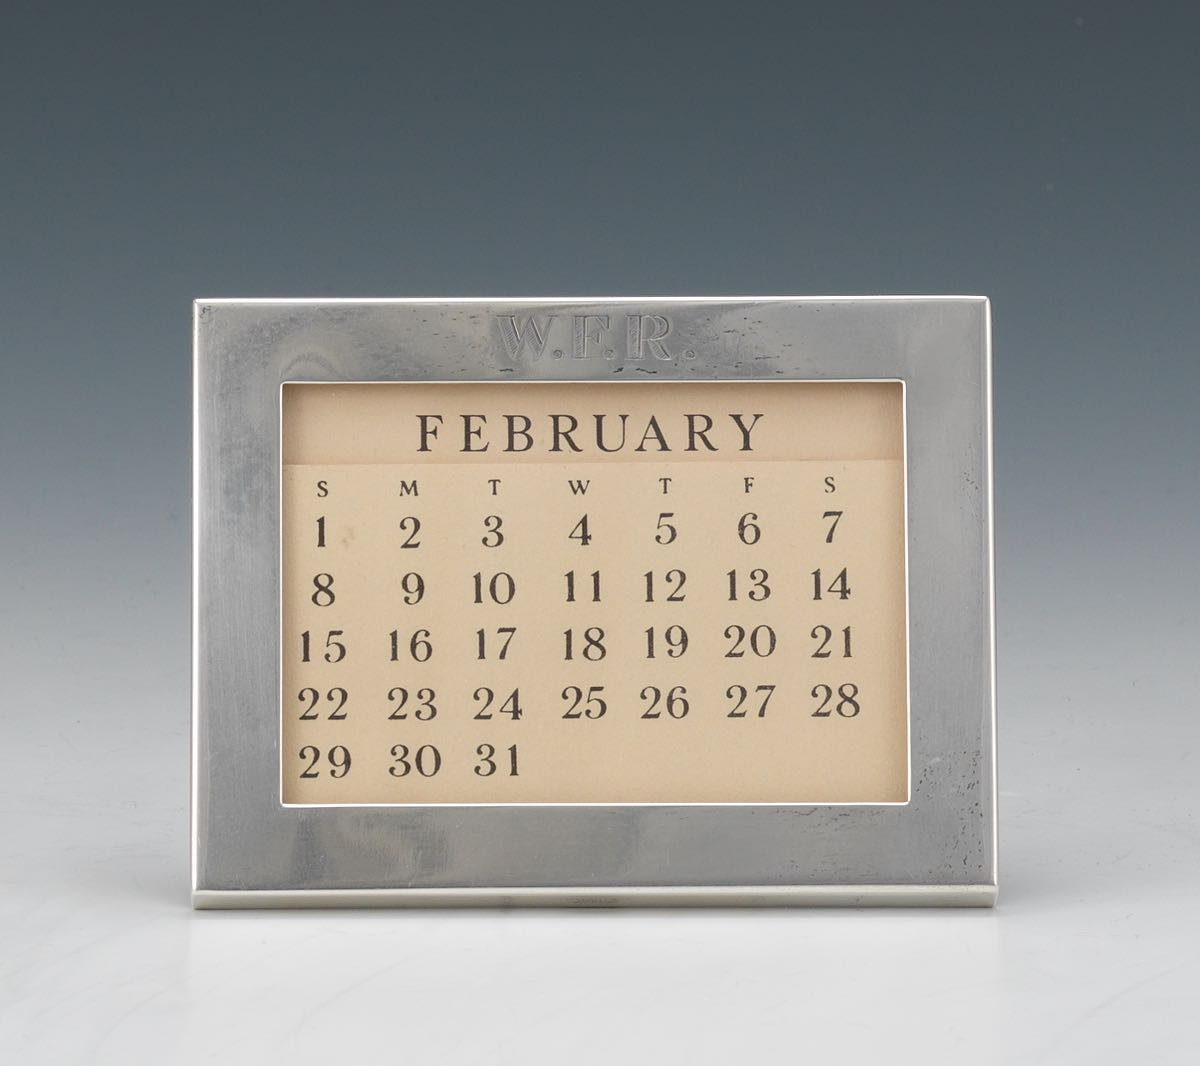 Tiffany & Co. Sterling Silver Perpetual Calendar Frame, 02.19.15 ...